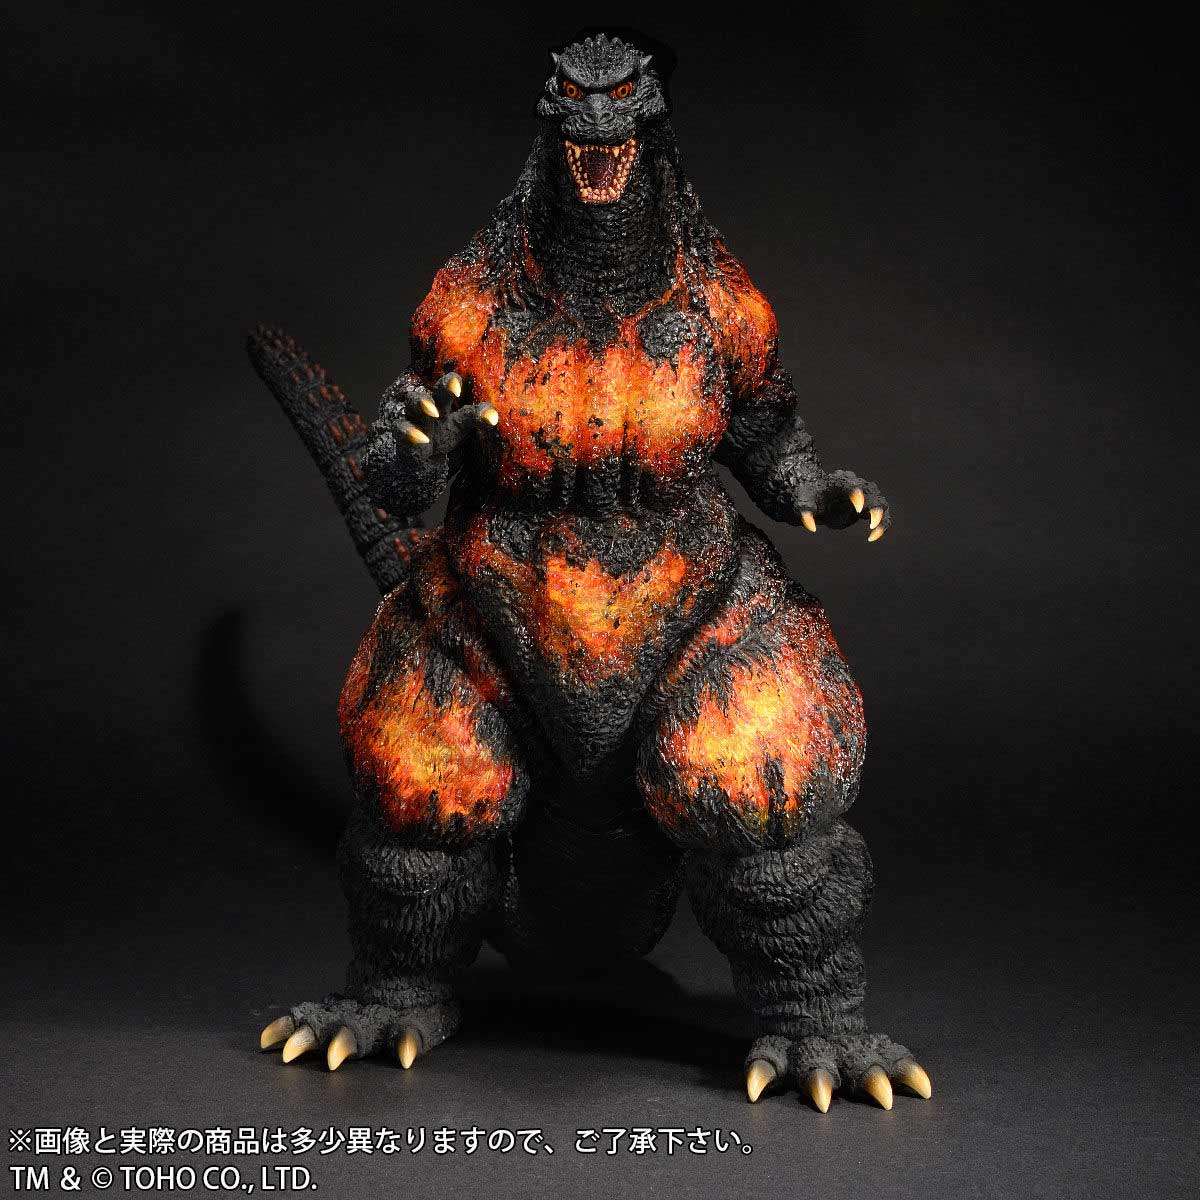 Front view of the 30cm Series Yuji Sakai Modeling Collection Godzilla 1995 Ric Exclusive vinyl figure by X-Plus.